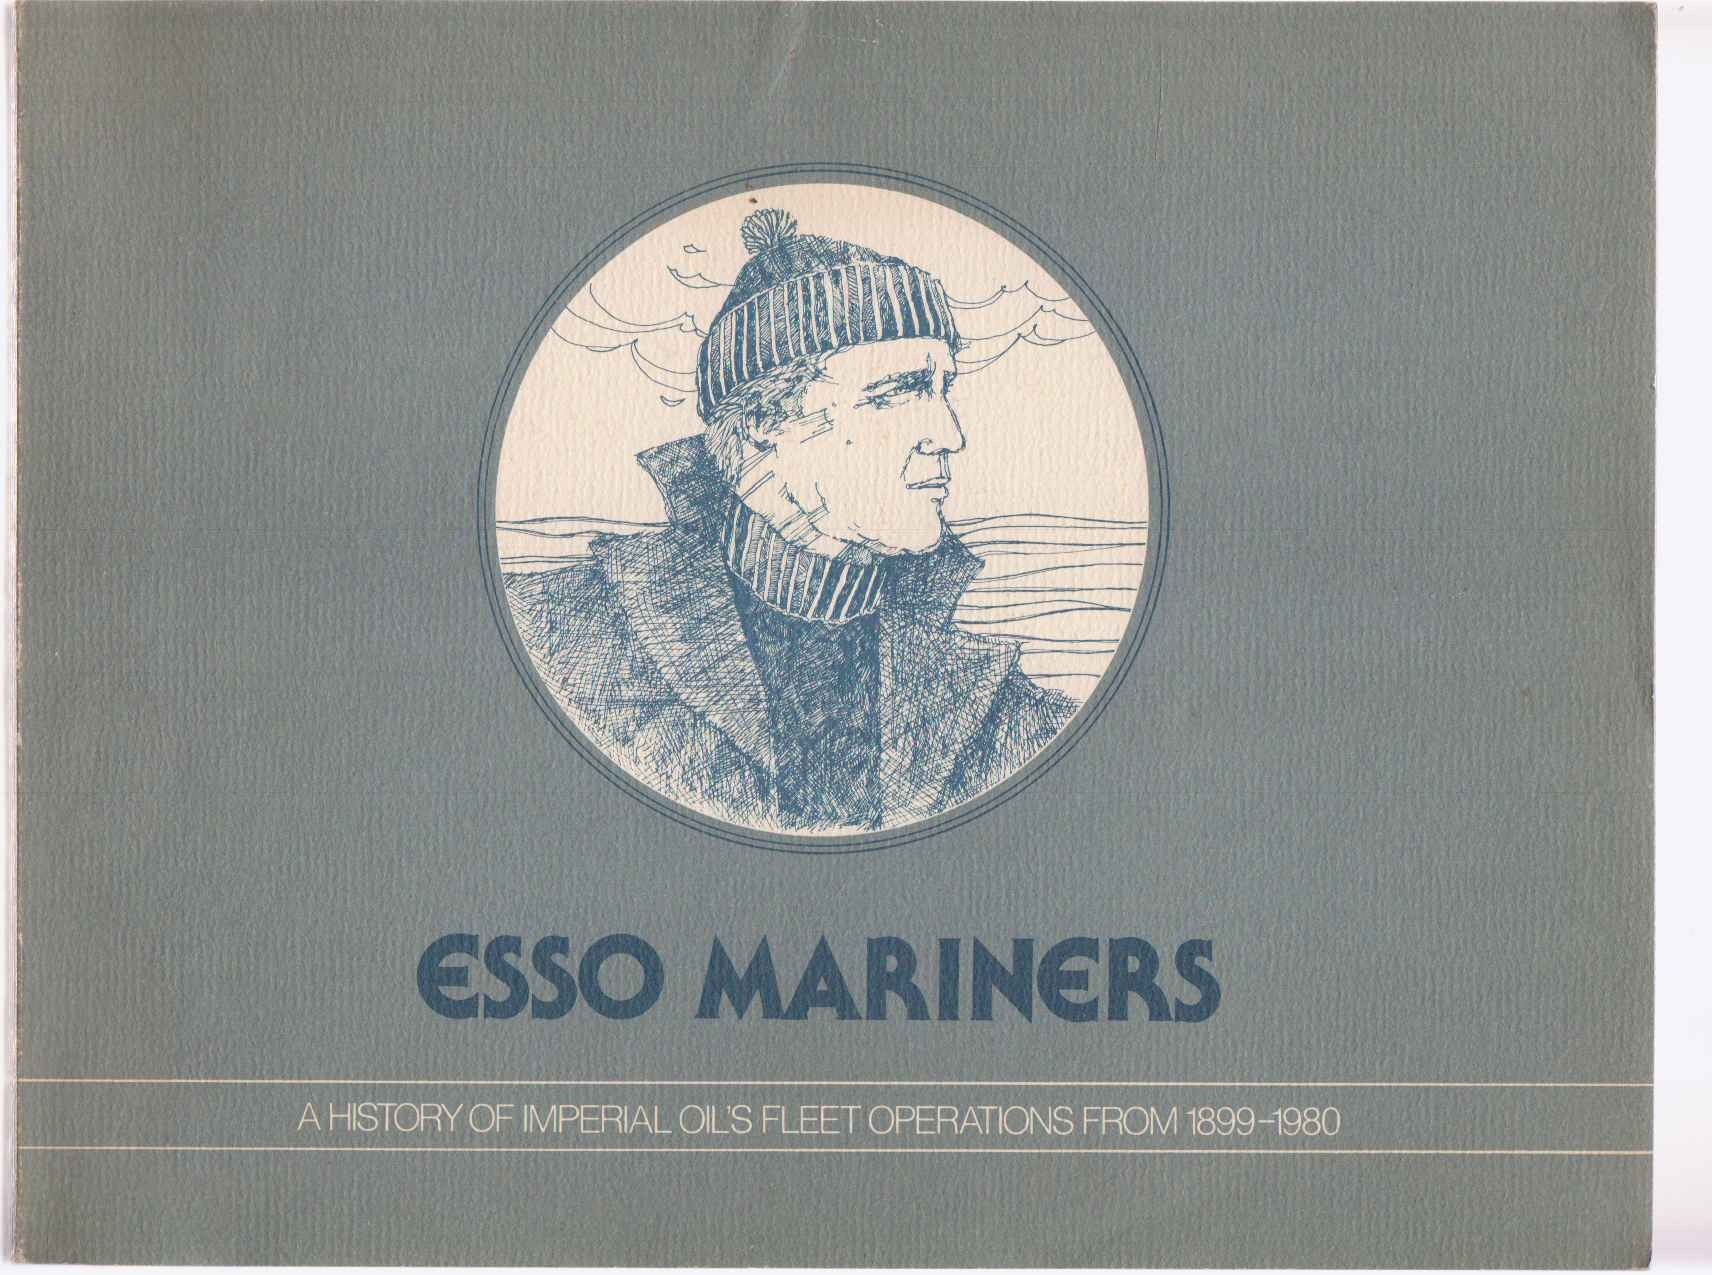 Image for Esso Mariners A History of Imperial Oil's Fleet Operations from 1899-1980